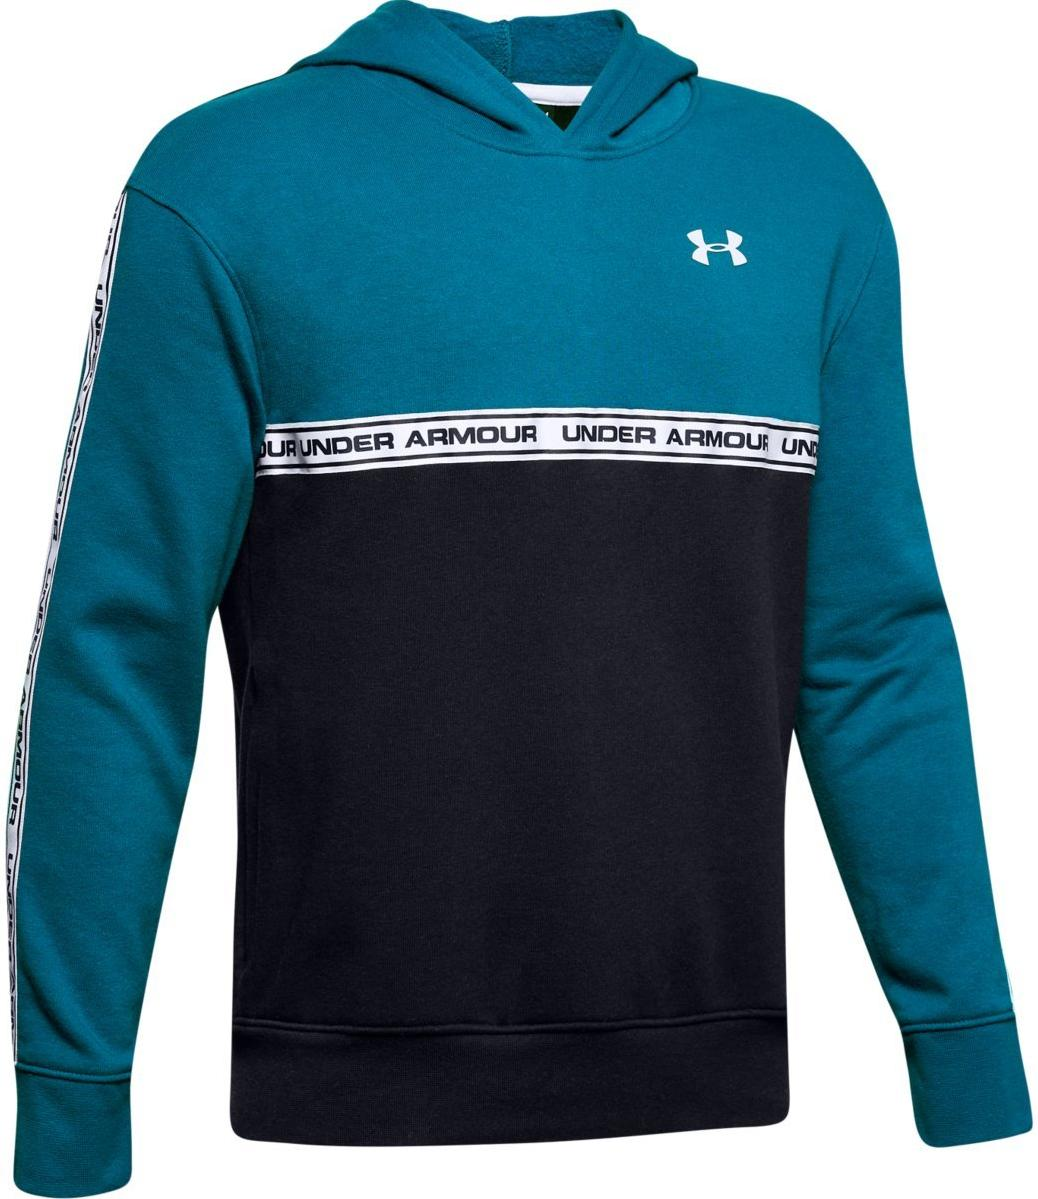 Trenirka s kapuljačom Under Armour SportStyle Fleece Hoodie